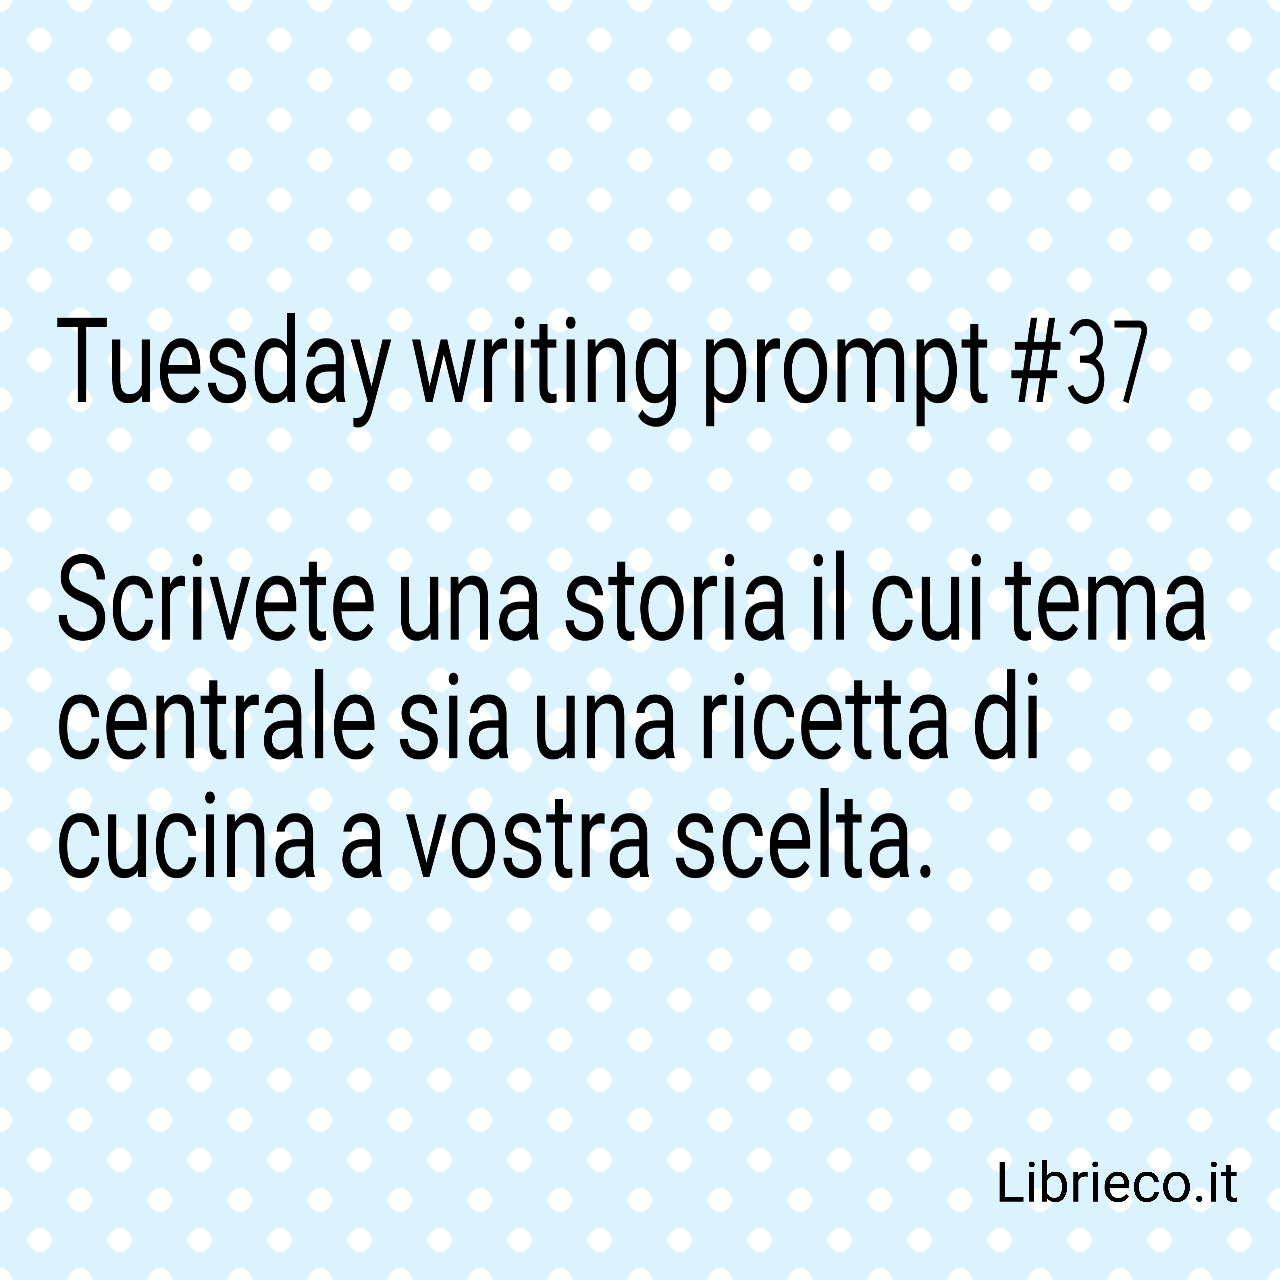 Tuesday writing prompt #37